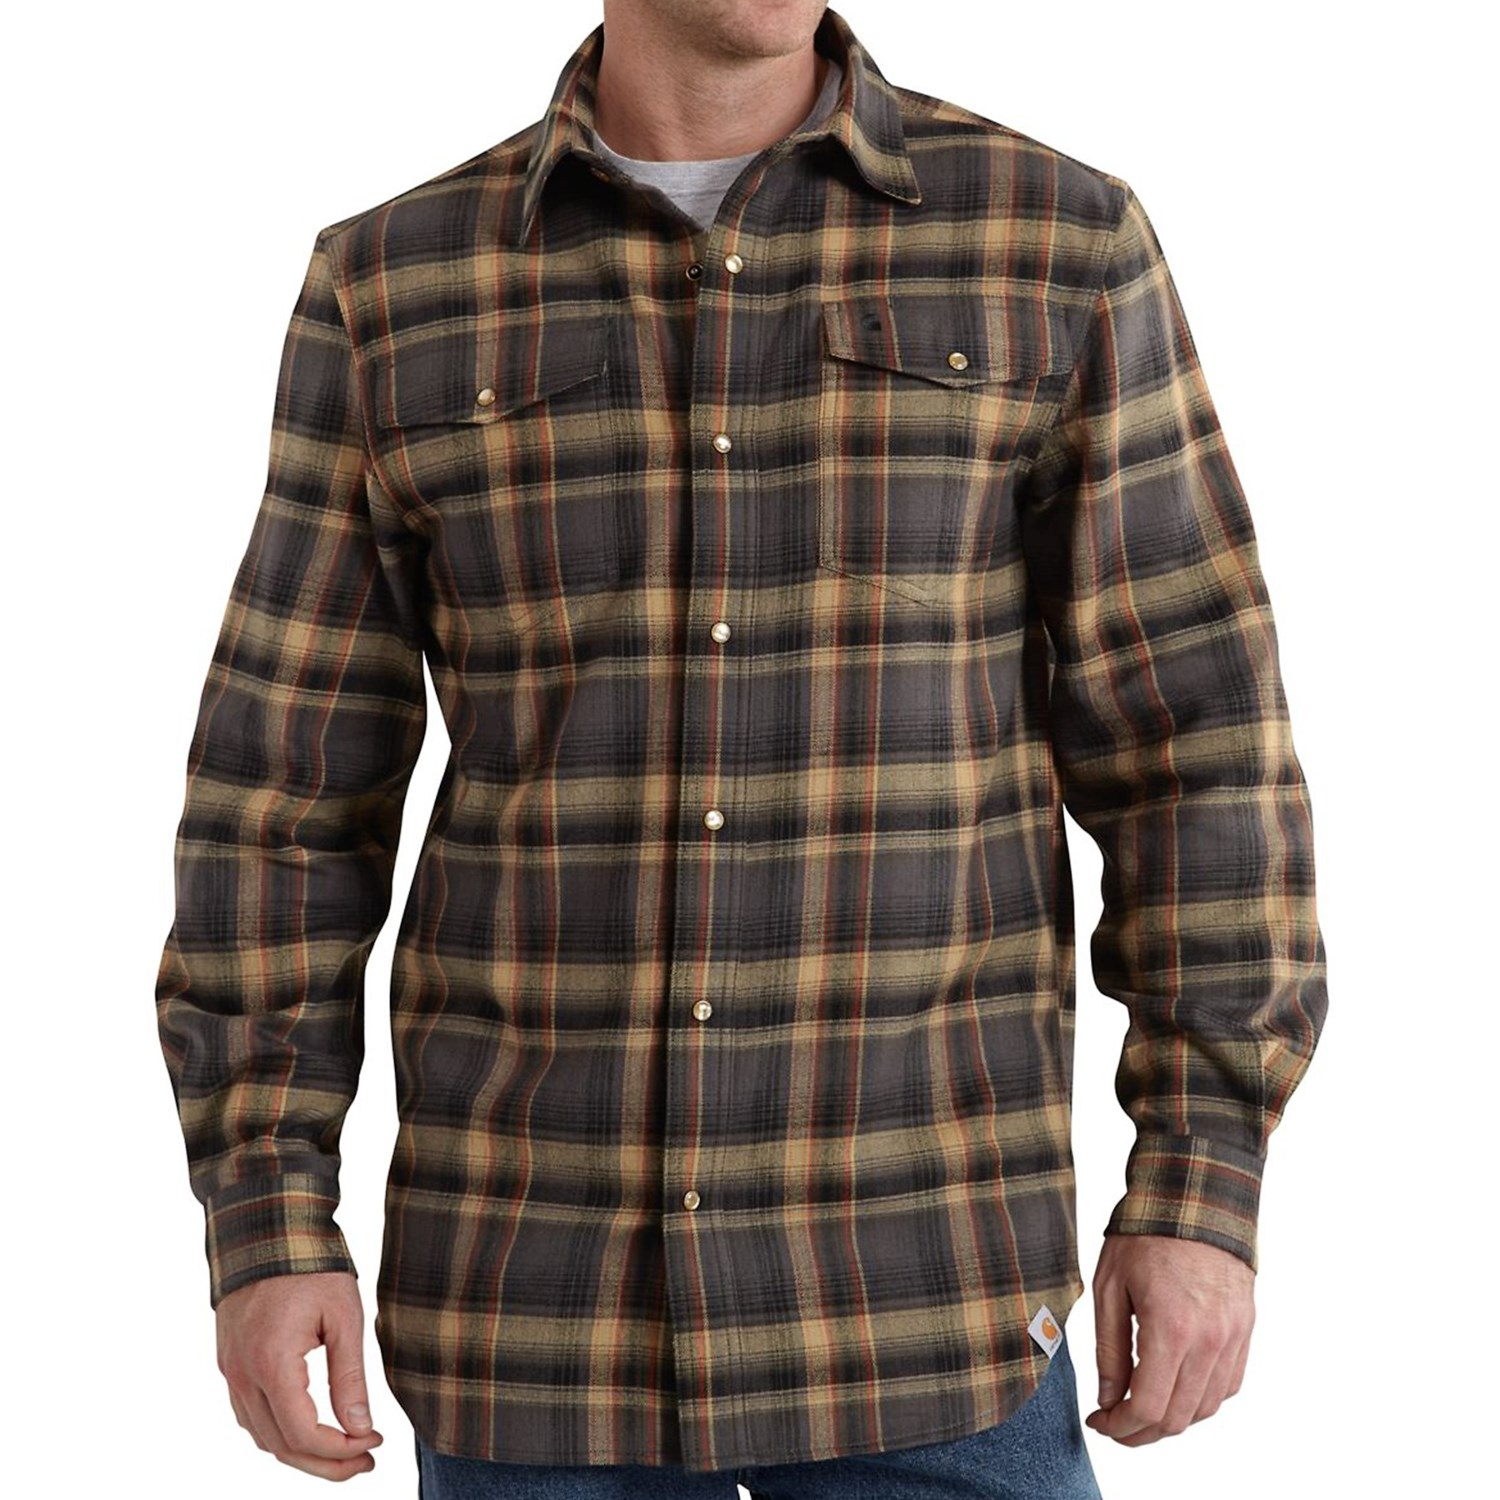 Davis Big and Tall features a selection of Big and Tall Flannel Shirts for big and tall men. When the cold weather season hits, keep warm out on the job in a big and tall flannel shirt. Carhartt is a trusted brand, who offers high quality merchandise for hard working big and tall men.